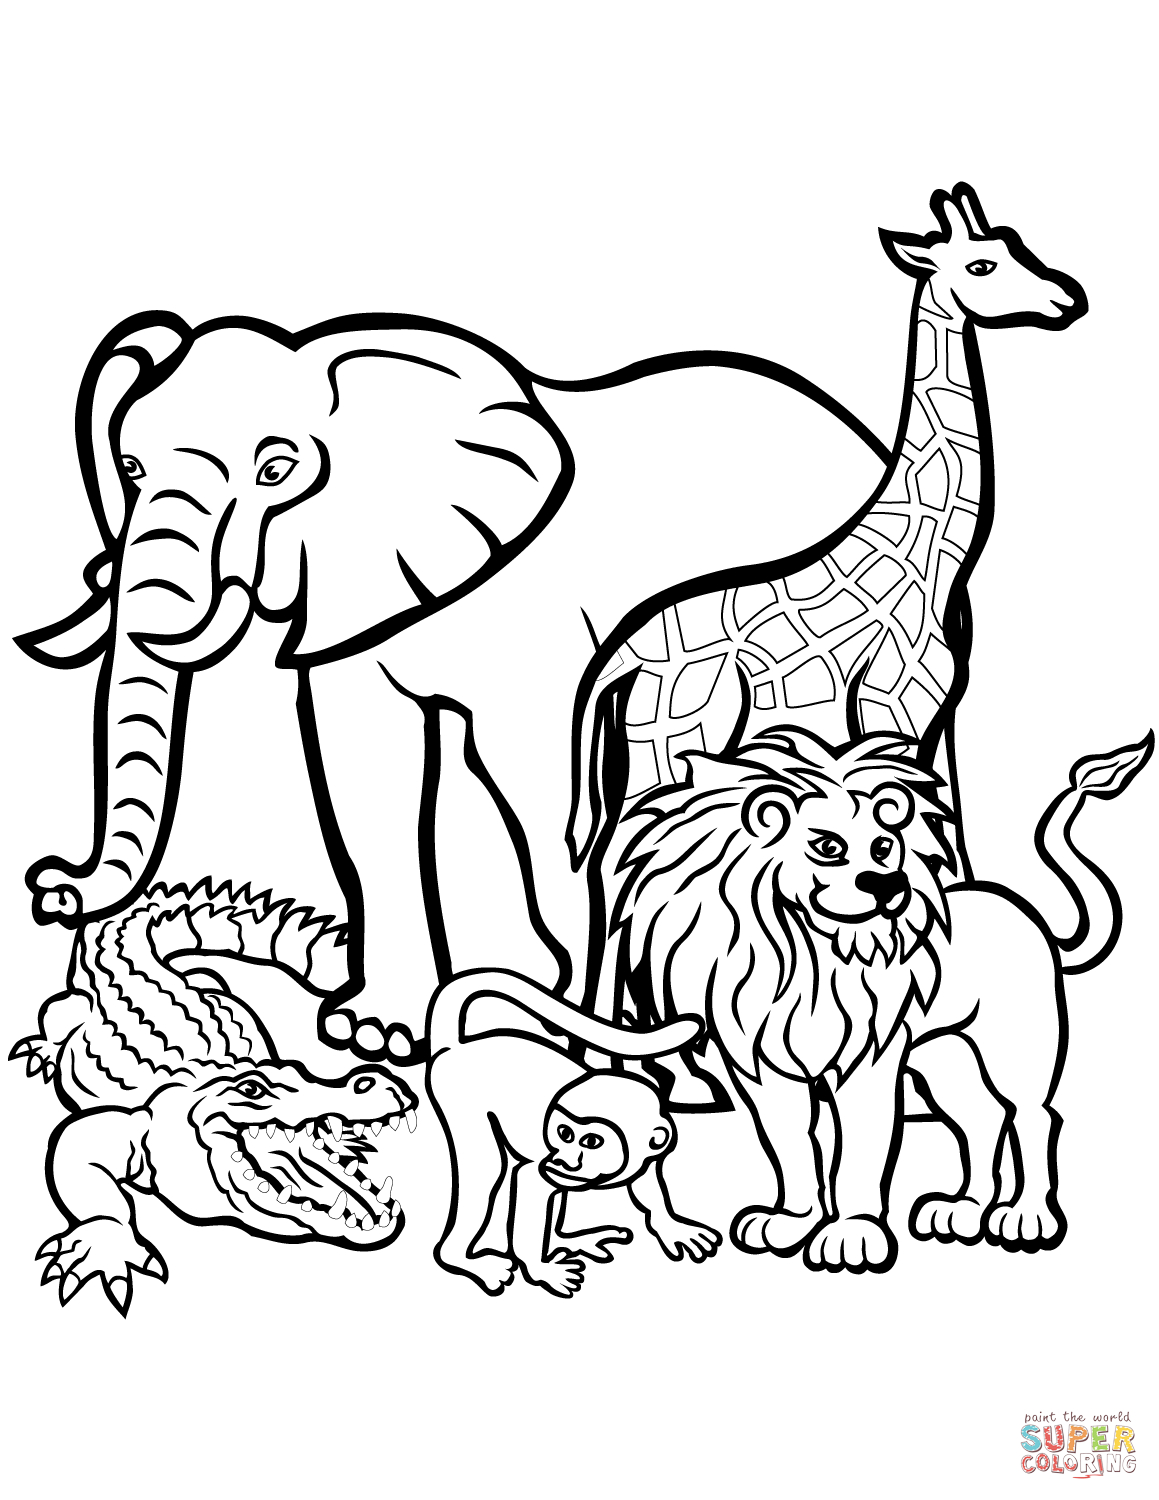 African Animals Coloring Page | Free Printable Coloring Pages - Free Printable Animal Coloring Pages